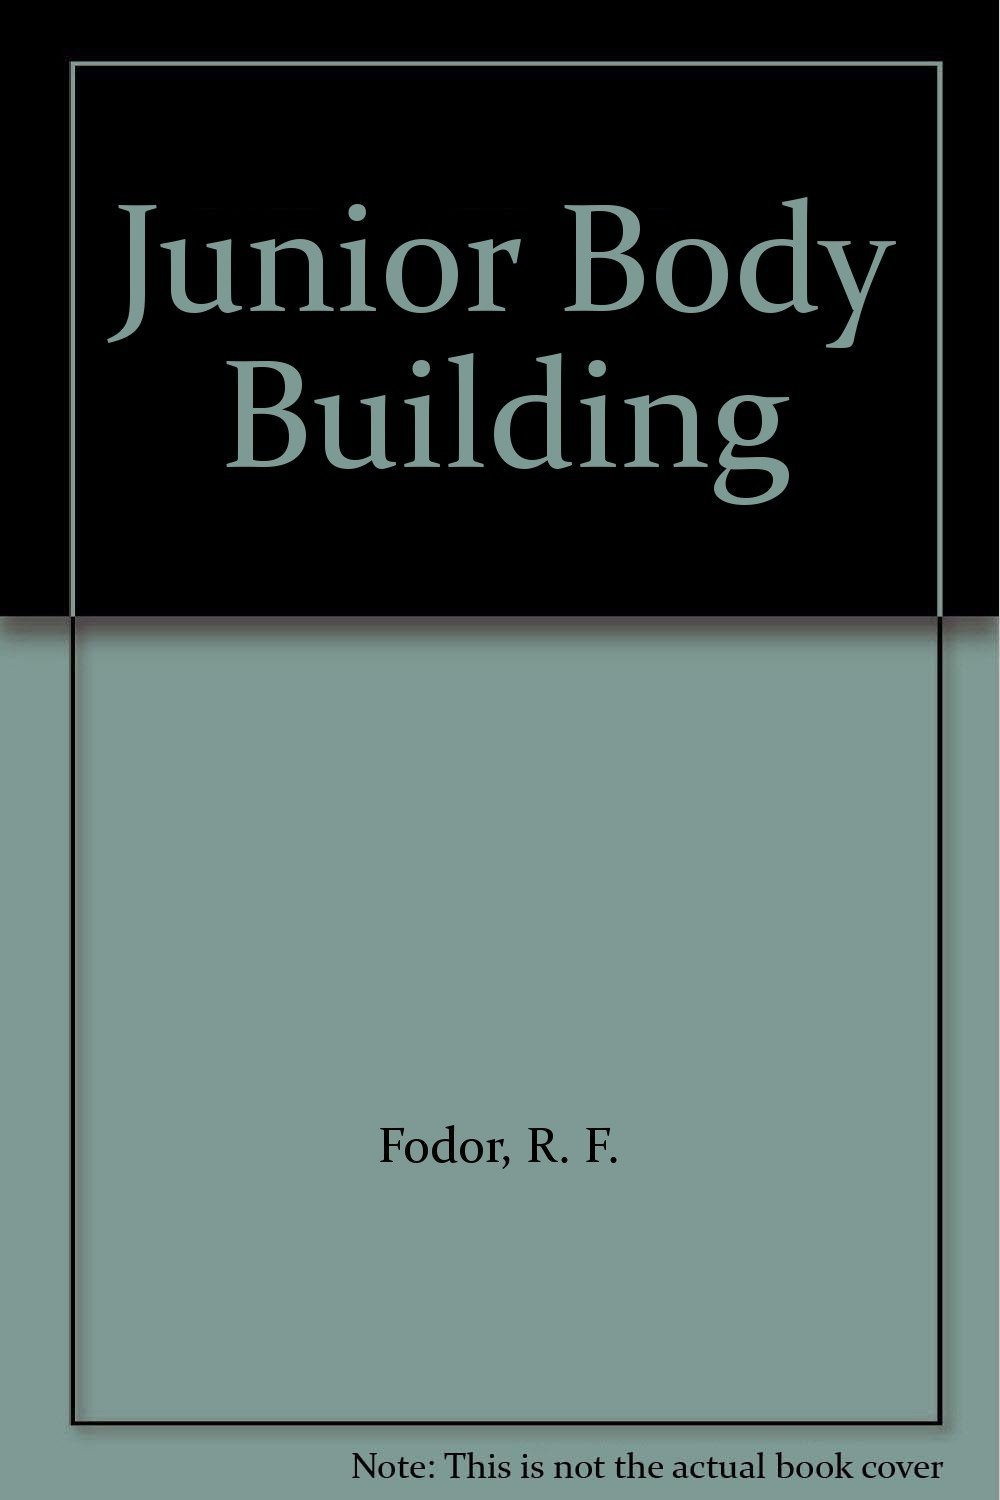 Junior Body Building by Fodor, R. F. and Taylor, G. J.